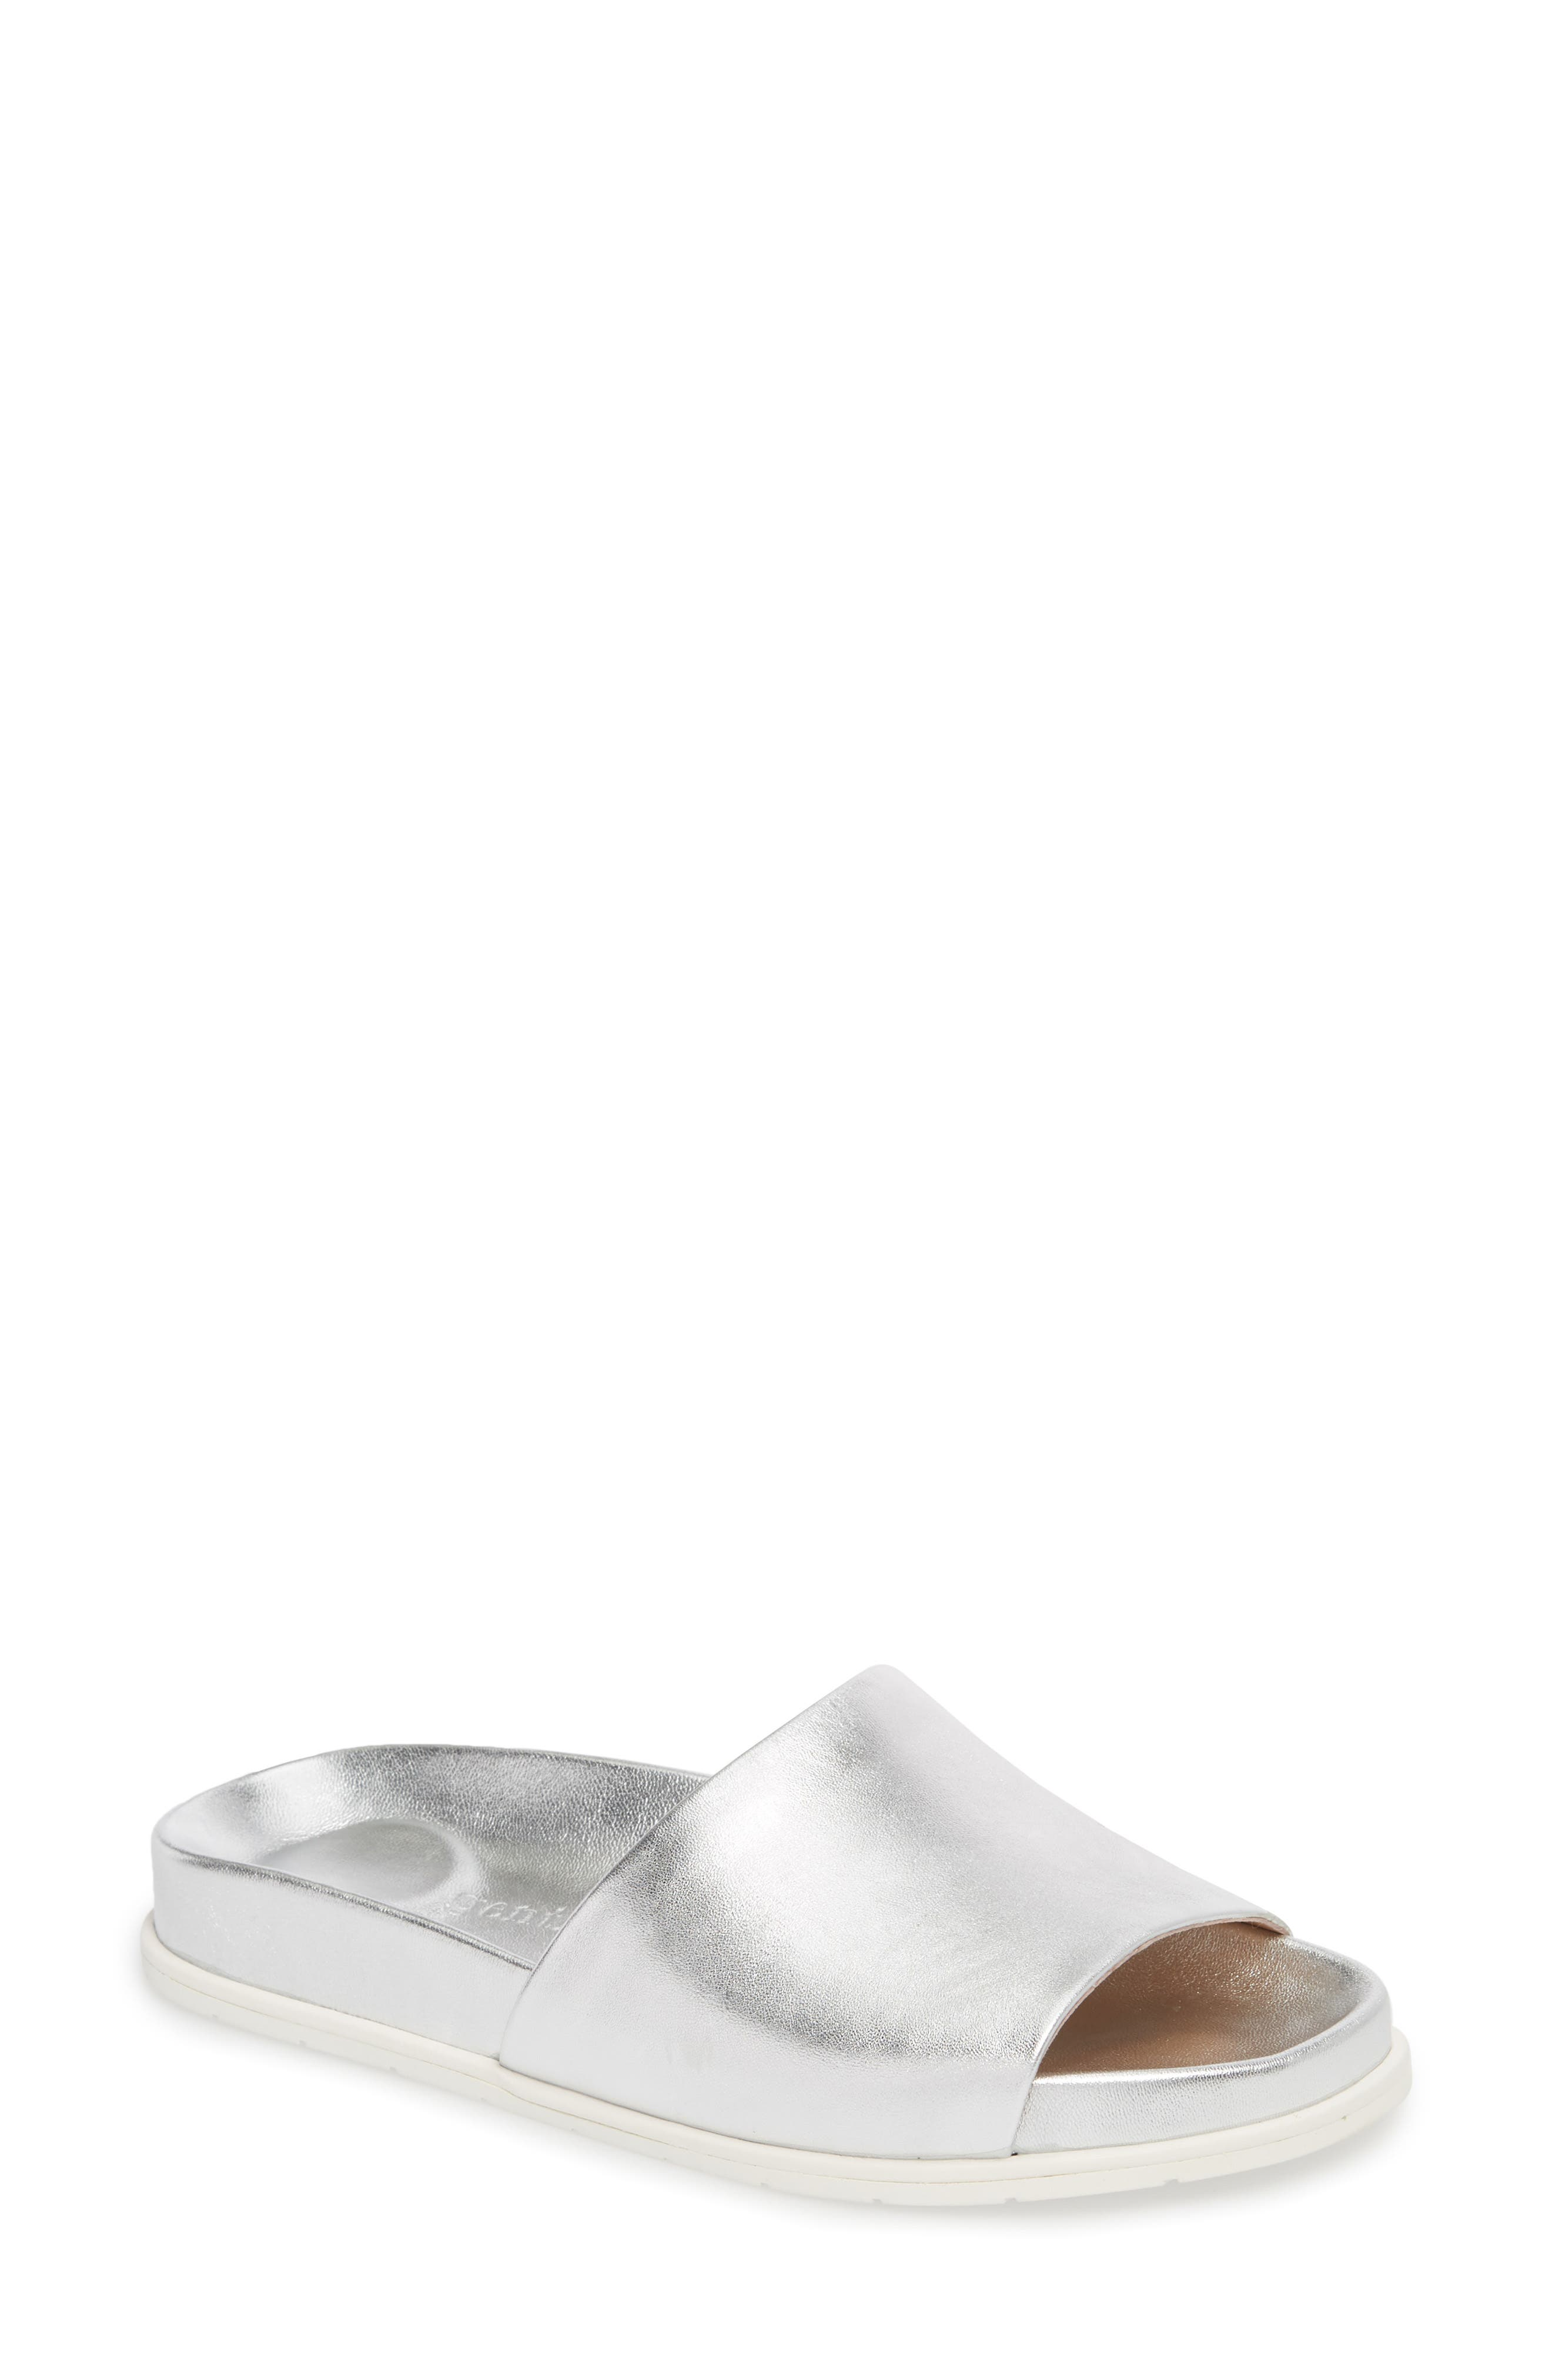 GENTLE SOULS BY KENNETH COLE, Iona Slide Sandal, Main thumbnail 1, color, SILVER METALLIC LEATHER